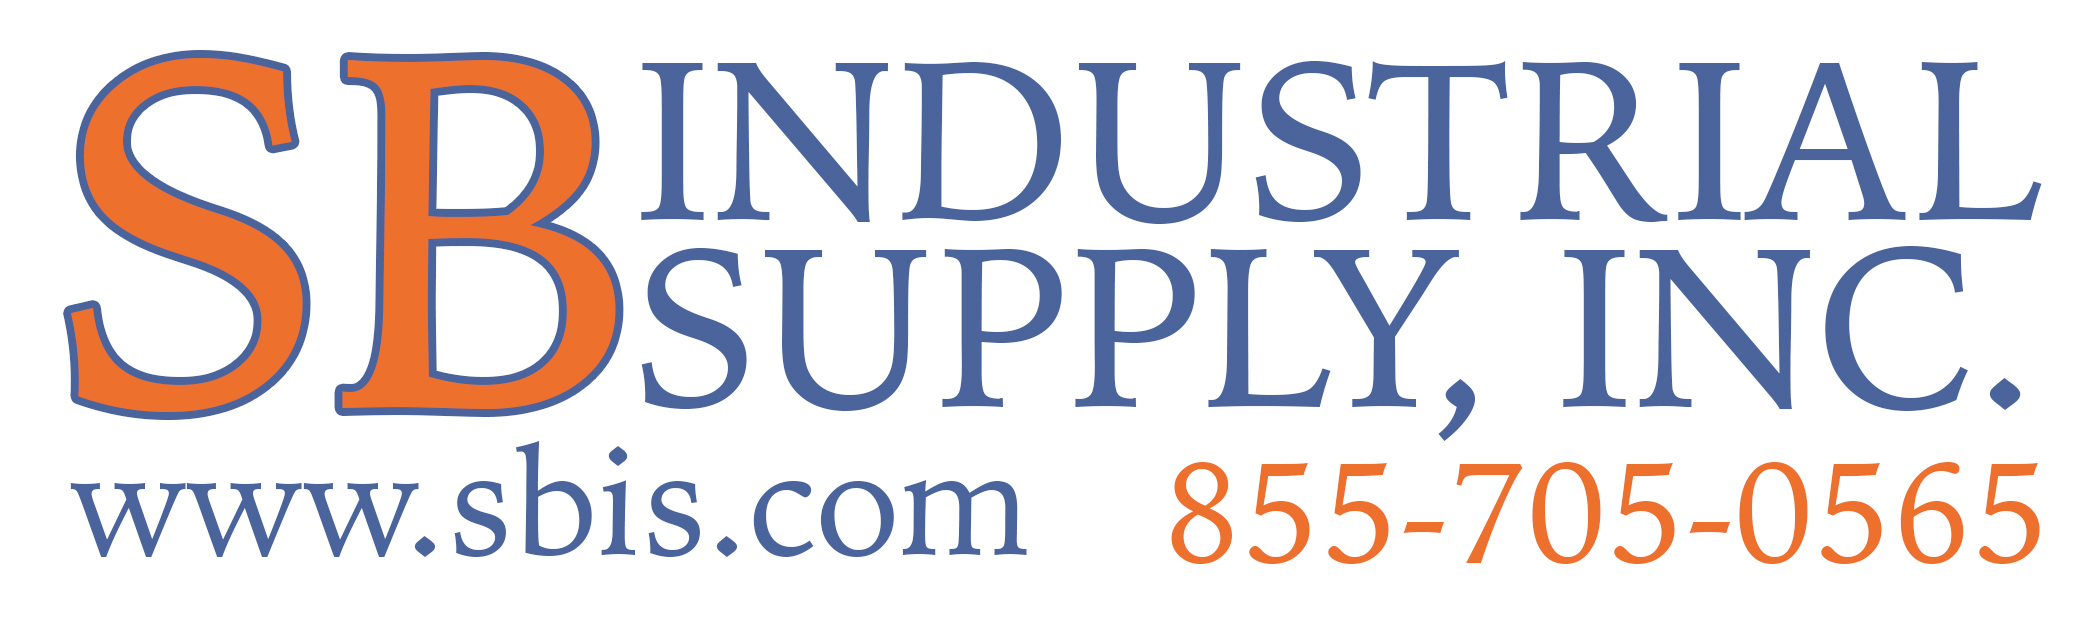 SB Industrial Supply